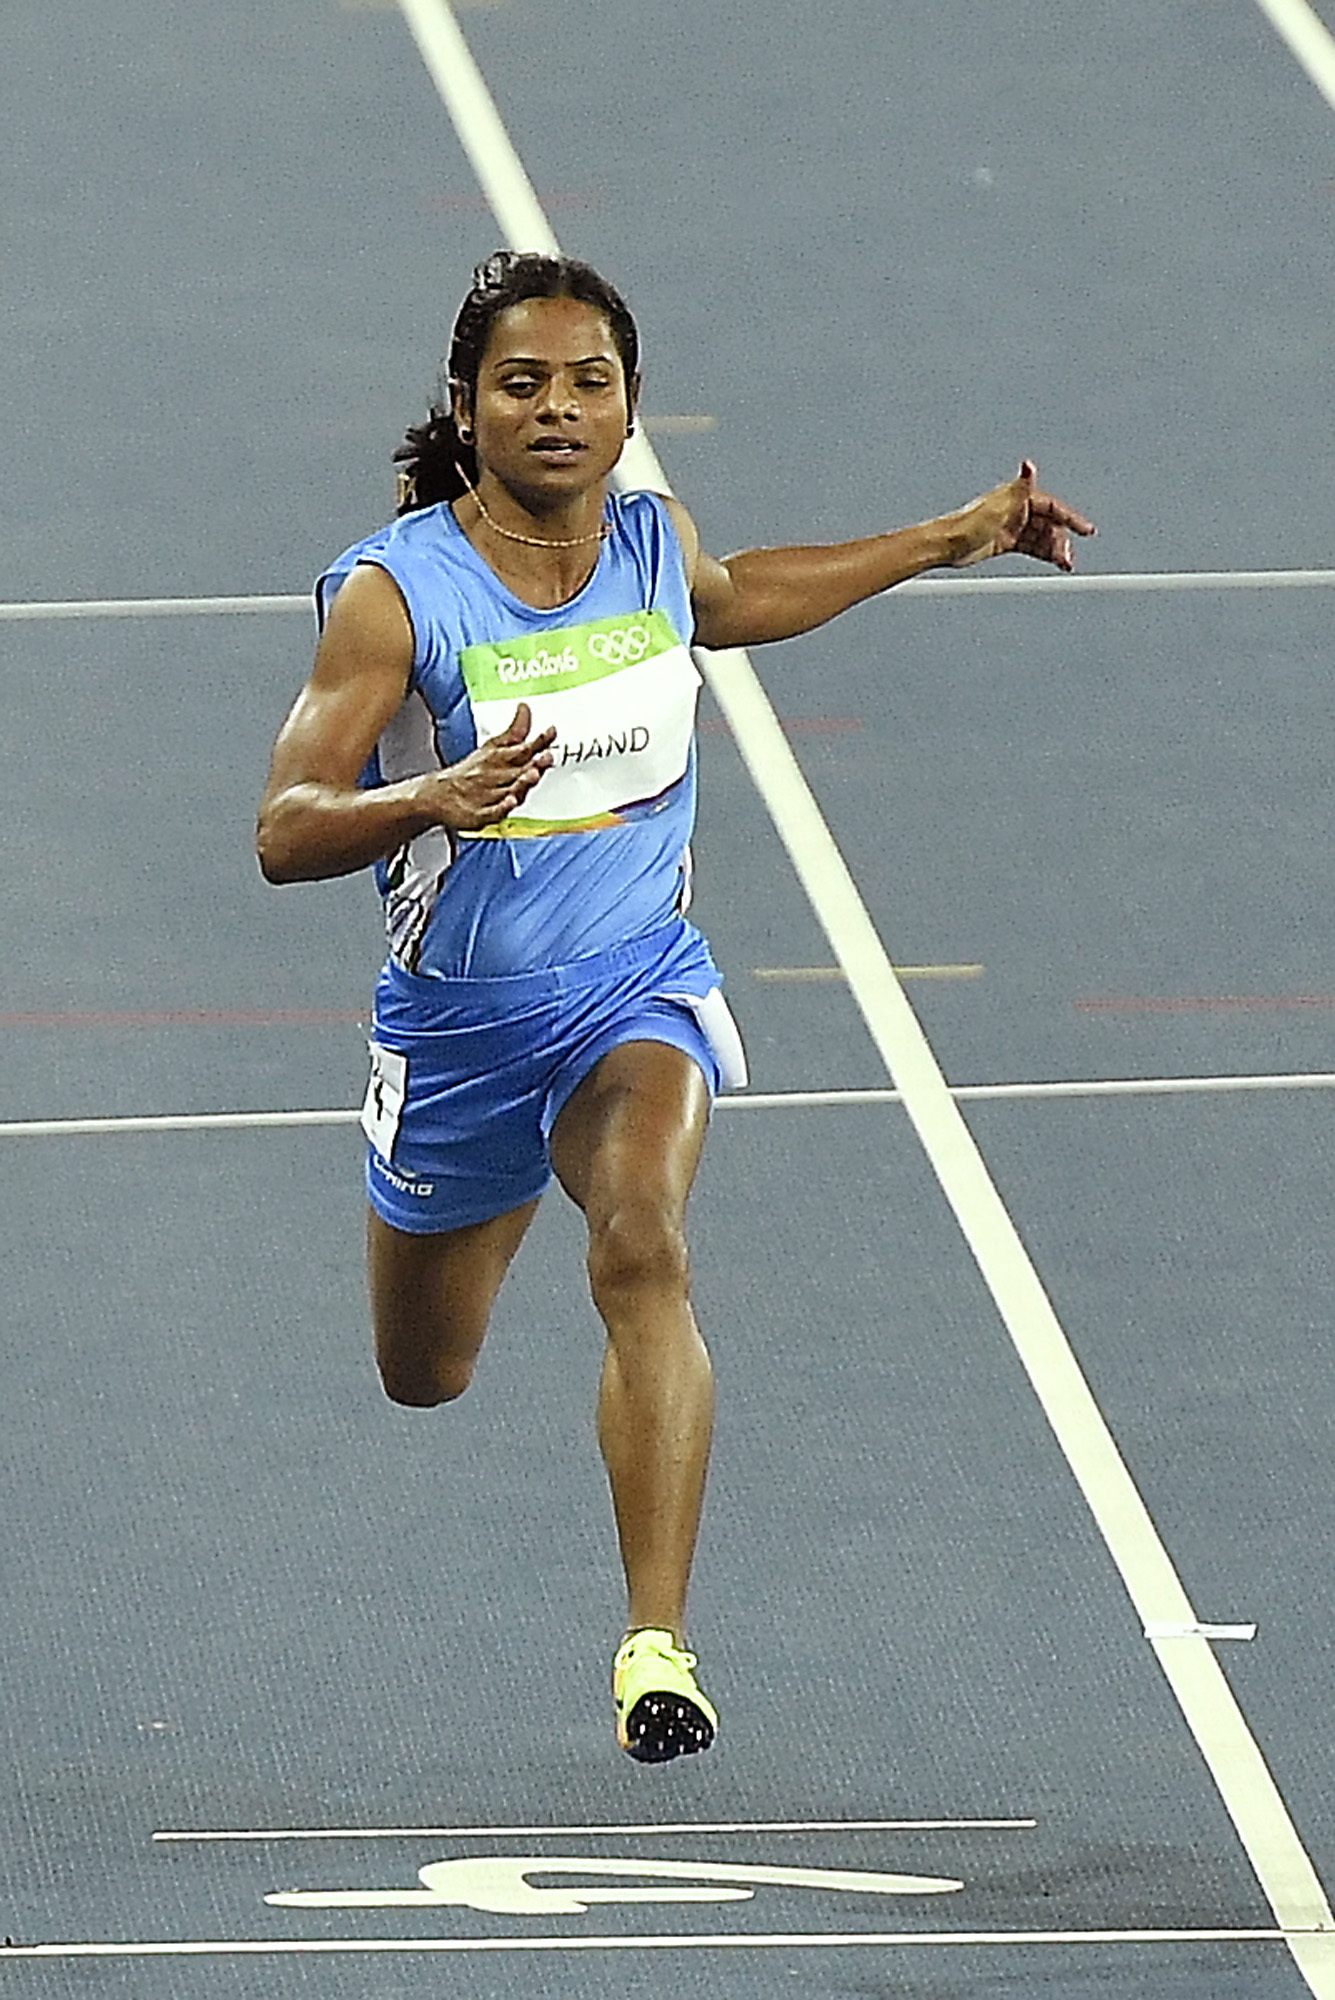 India's Dutee Chand crosses the line in a women's 100-meter first round heat during the athletics competitions of the 2016 Summer Olympics at the Olympic stadium in Rio de Janeiro, Brazil, Friday, Aug. 12, 2016.